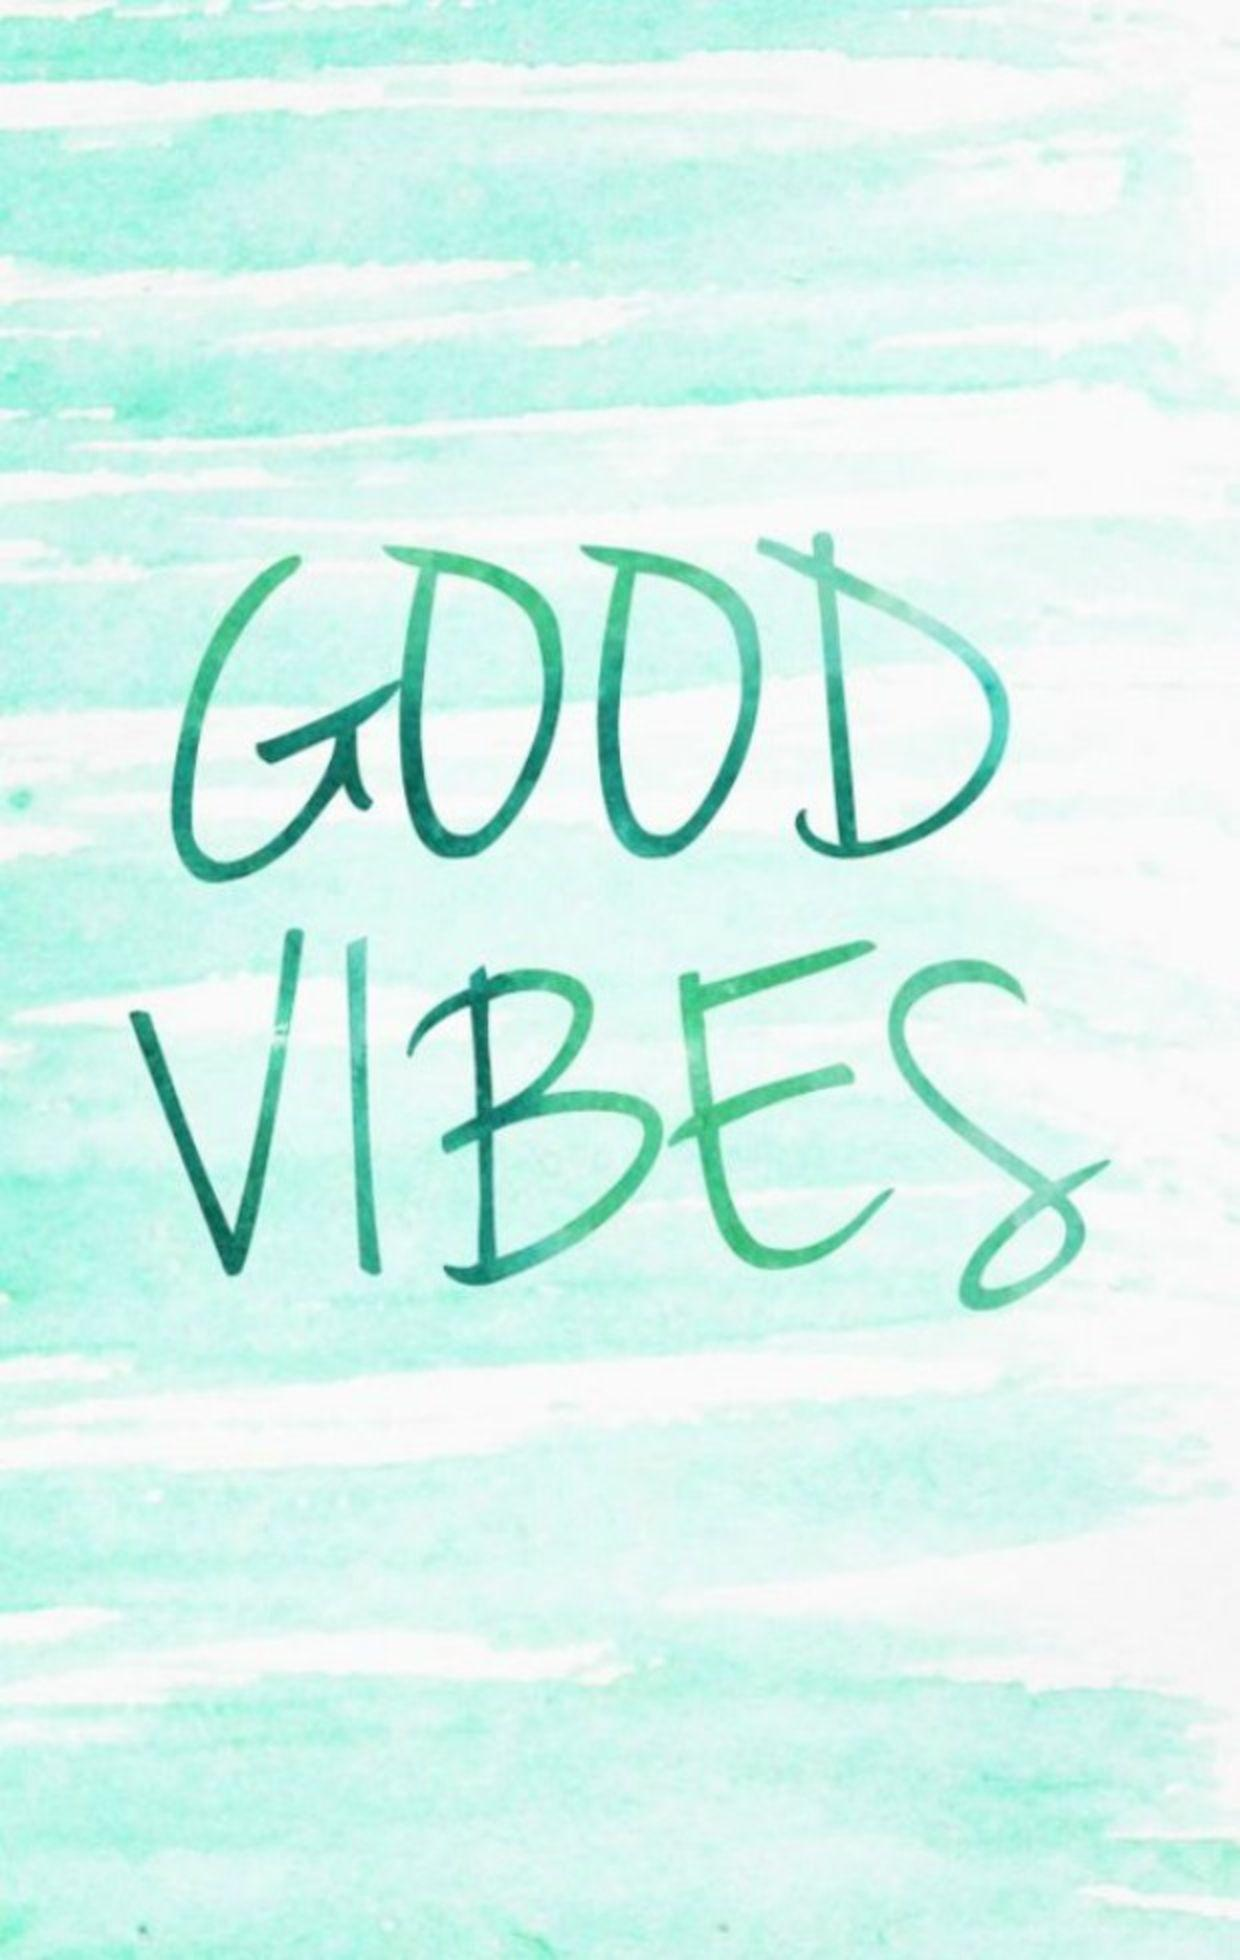 Cute Wallpapers For Laptop With Quotes For 11 Year Olds Good Vibes Only Wallpapers Wallpaper Cave